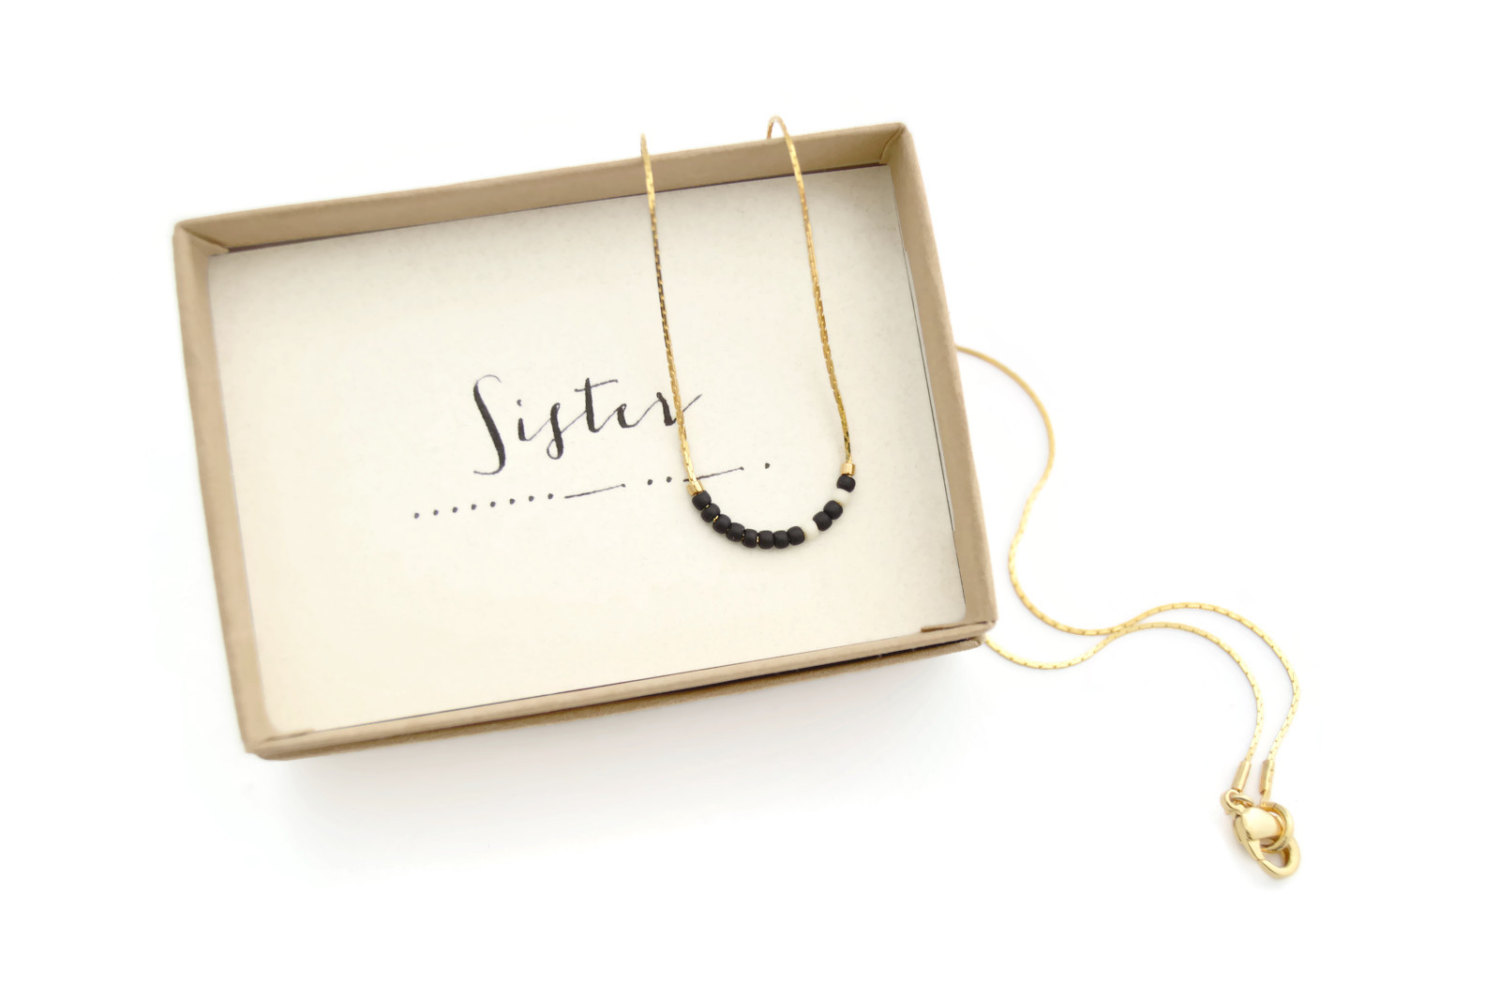 sister necklace and card gift morse code